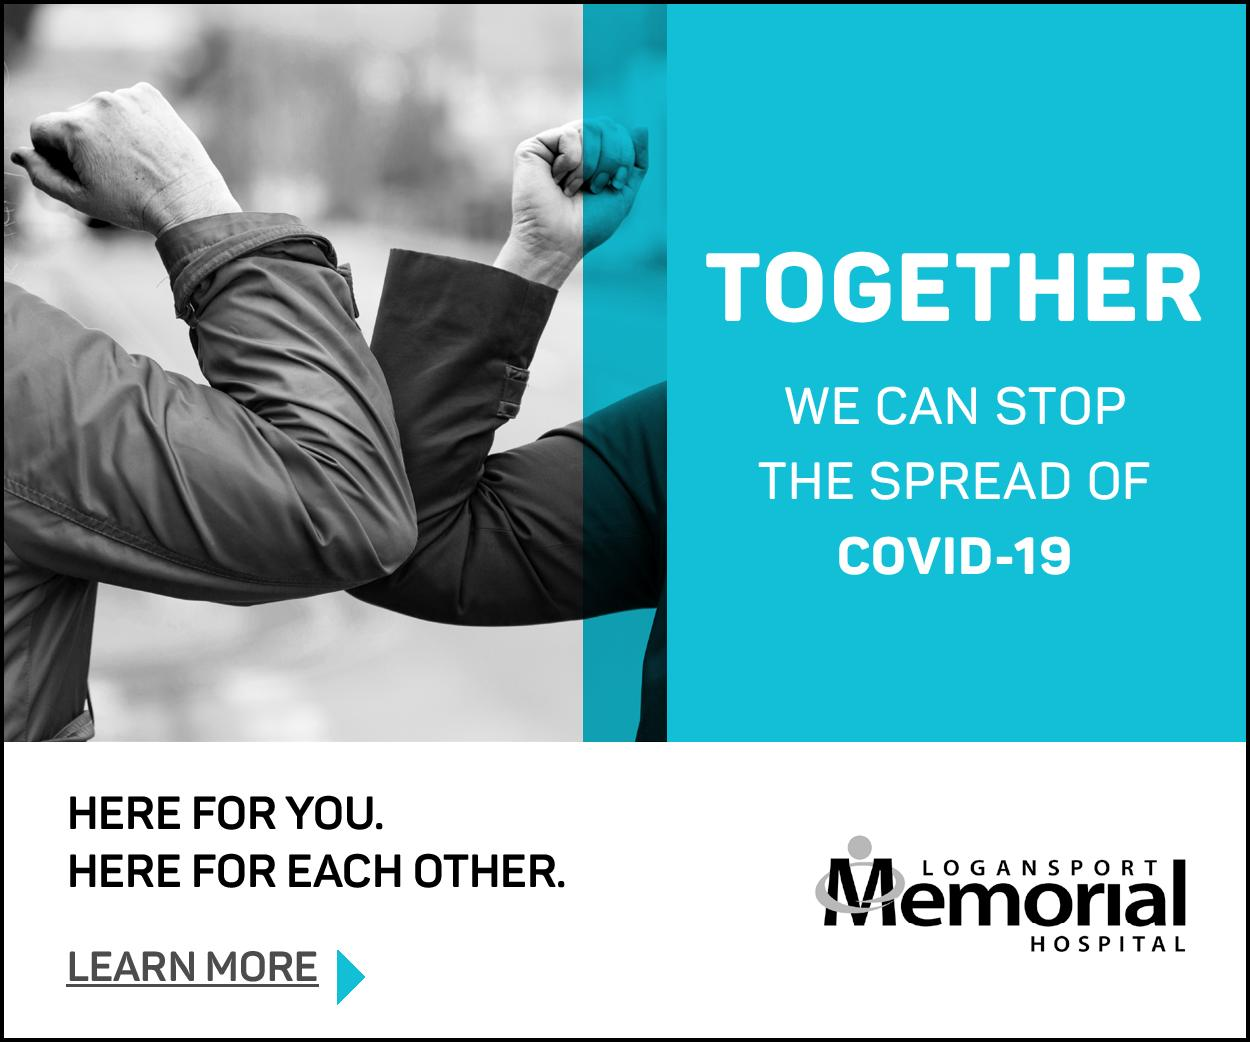 Logansport Memorial Hospital - Stop the Spread of COVID 19